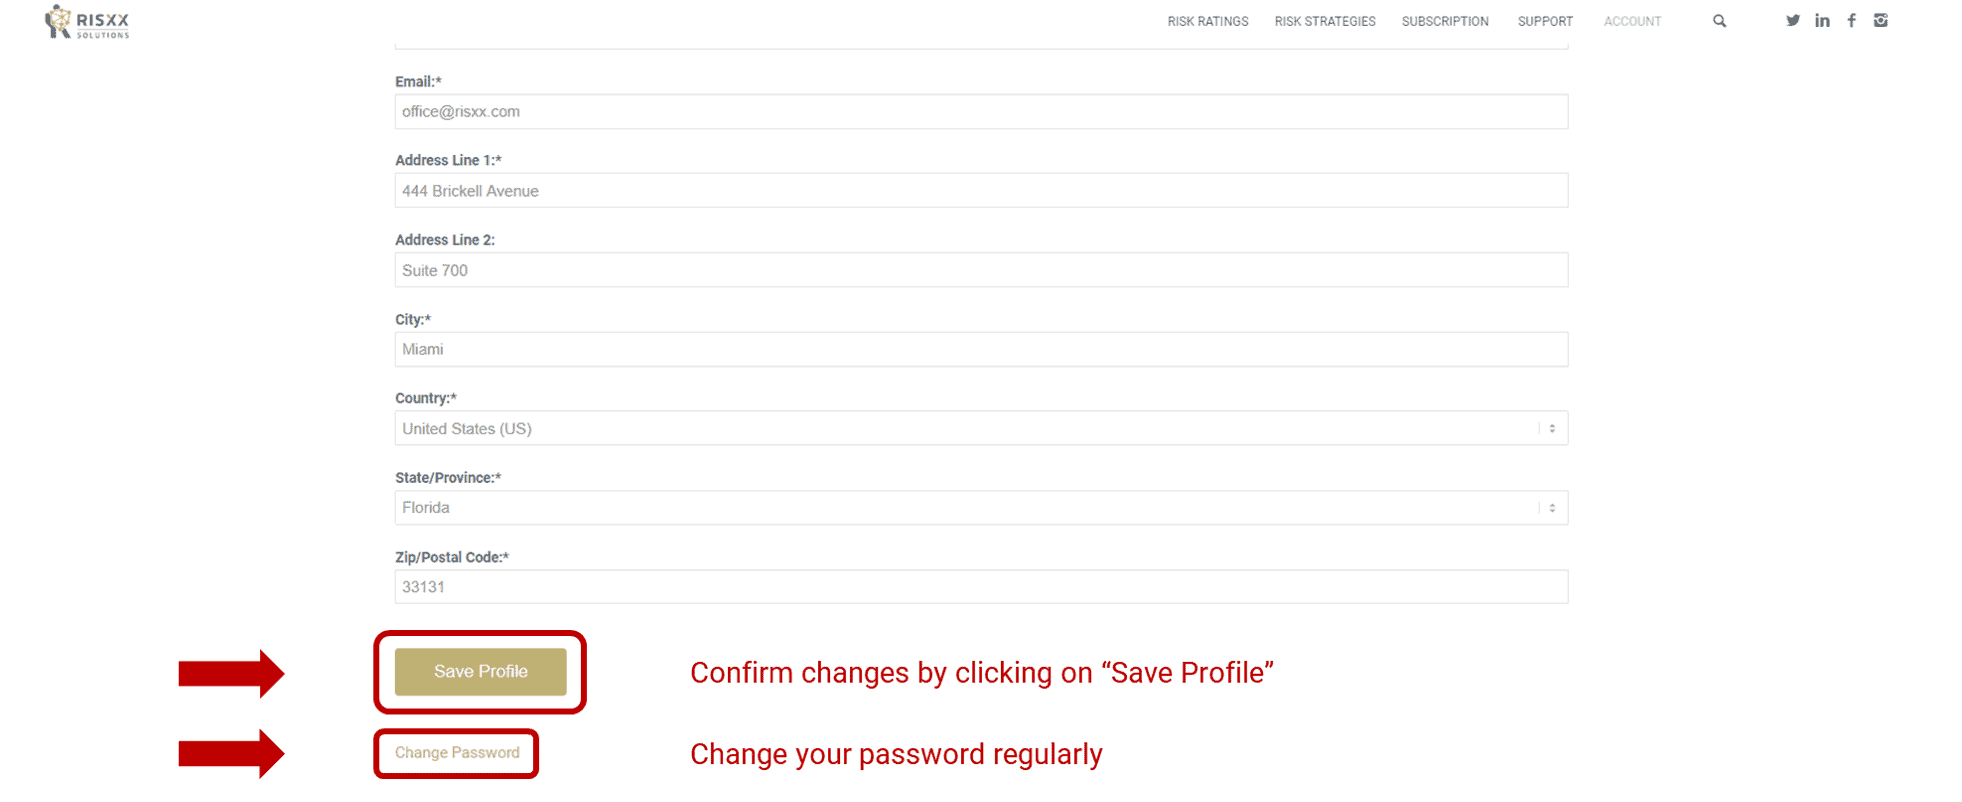 RISXX risk solutions – Subscription account management – confirm changes to profile + change password